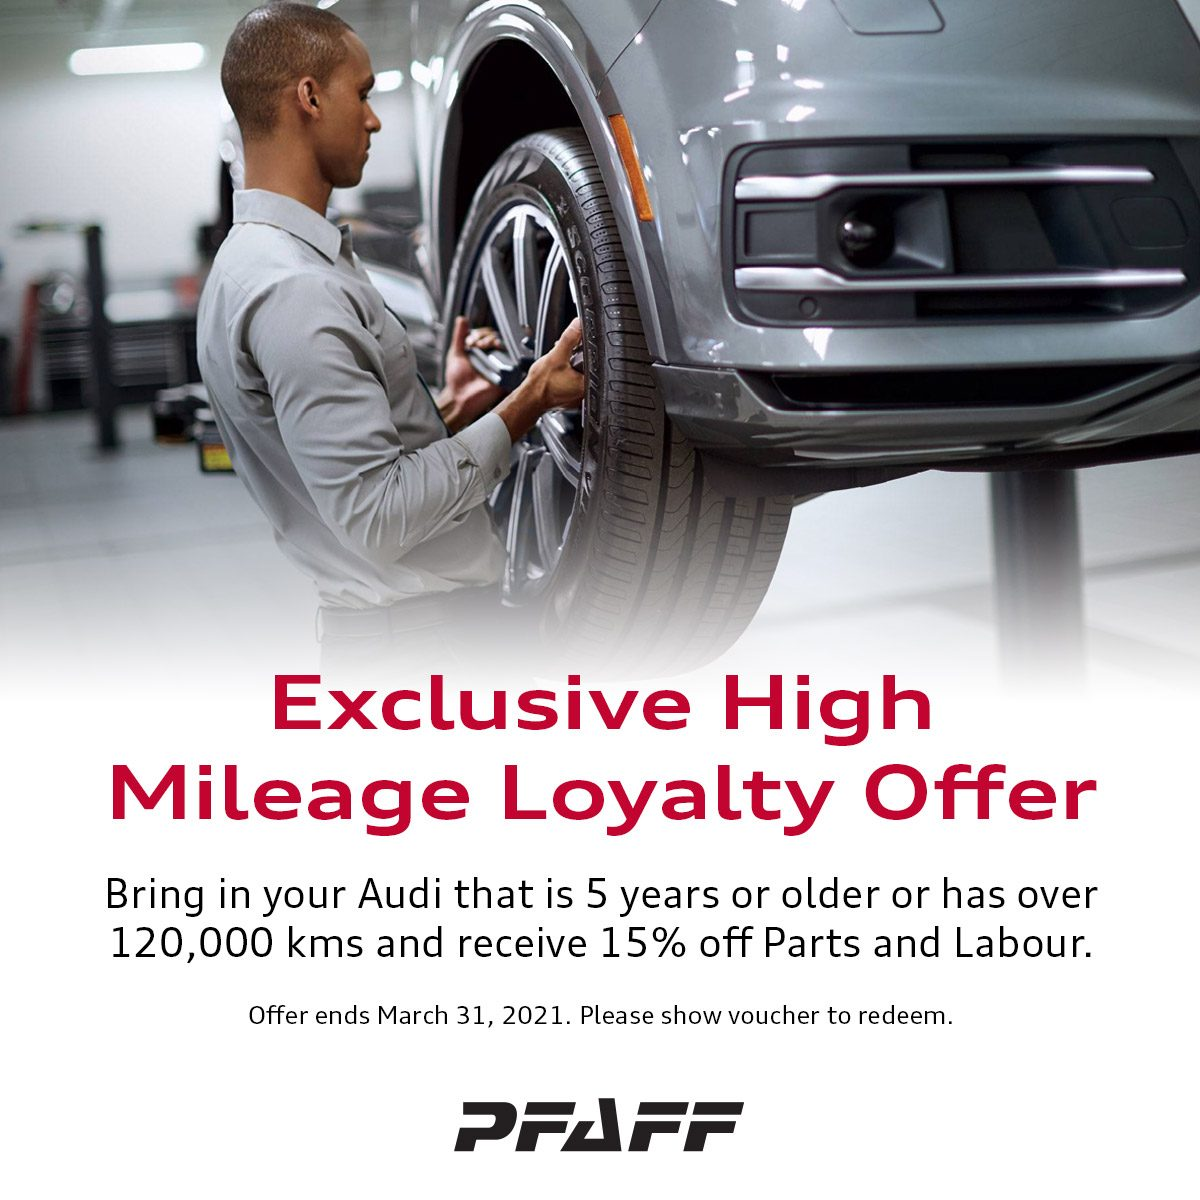 Exclusive High Mileage Loyalty Offer